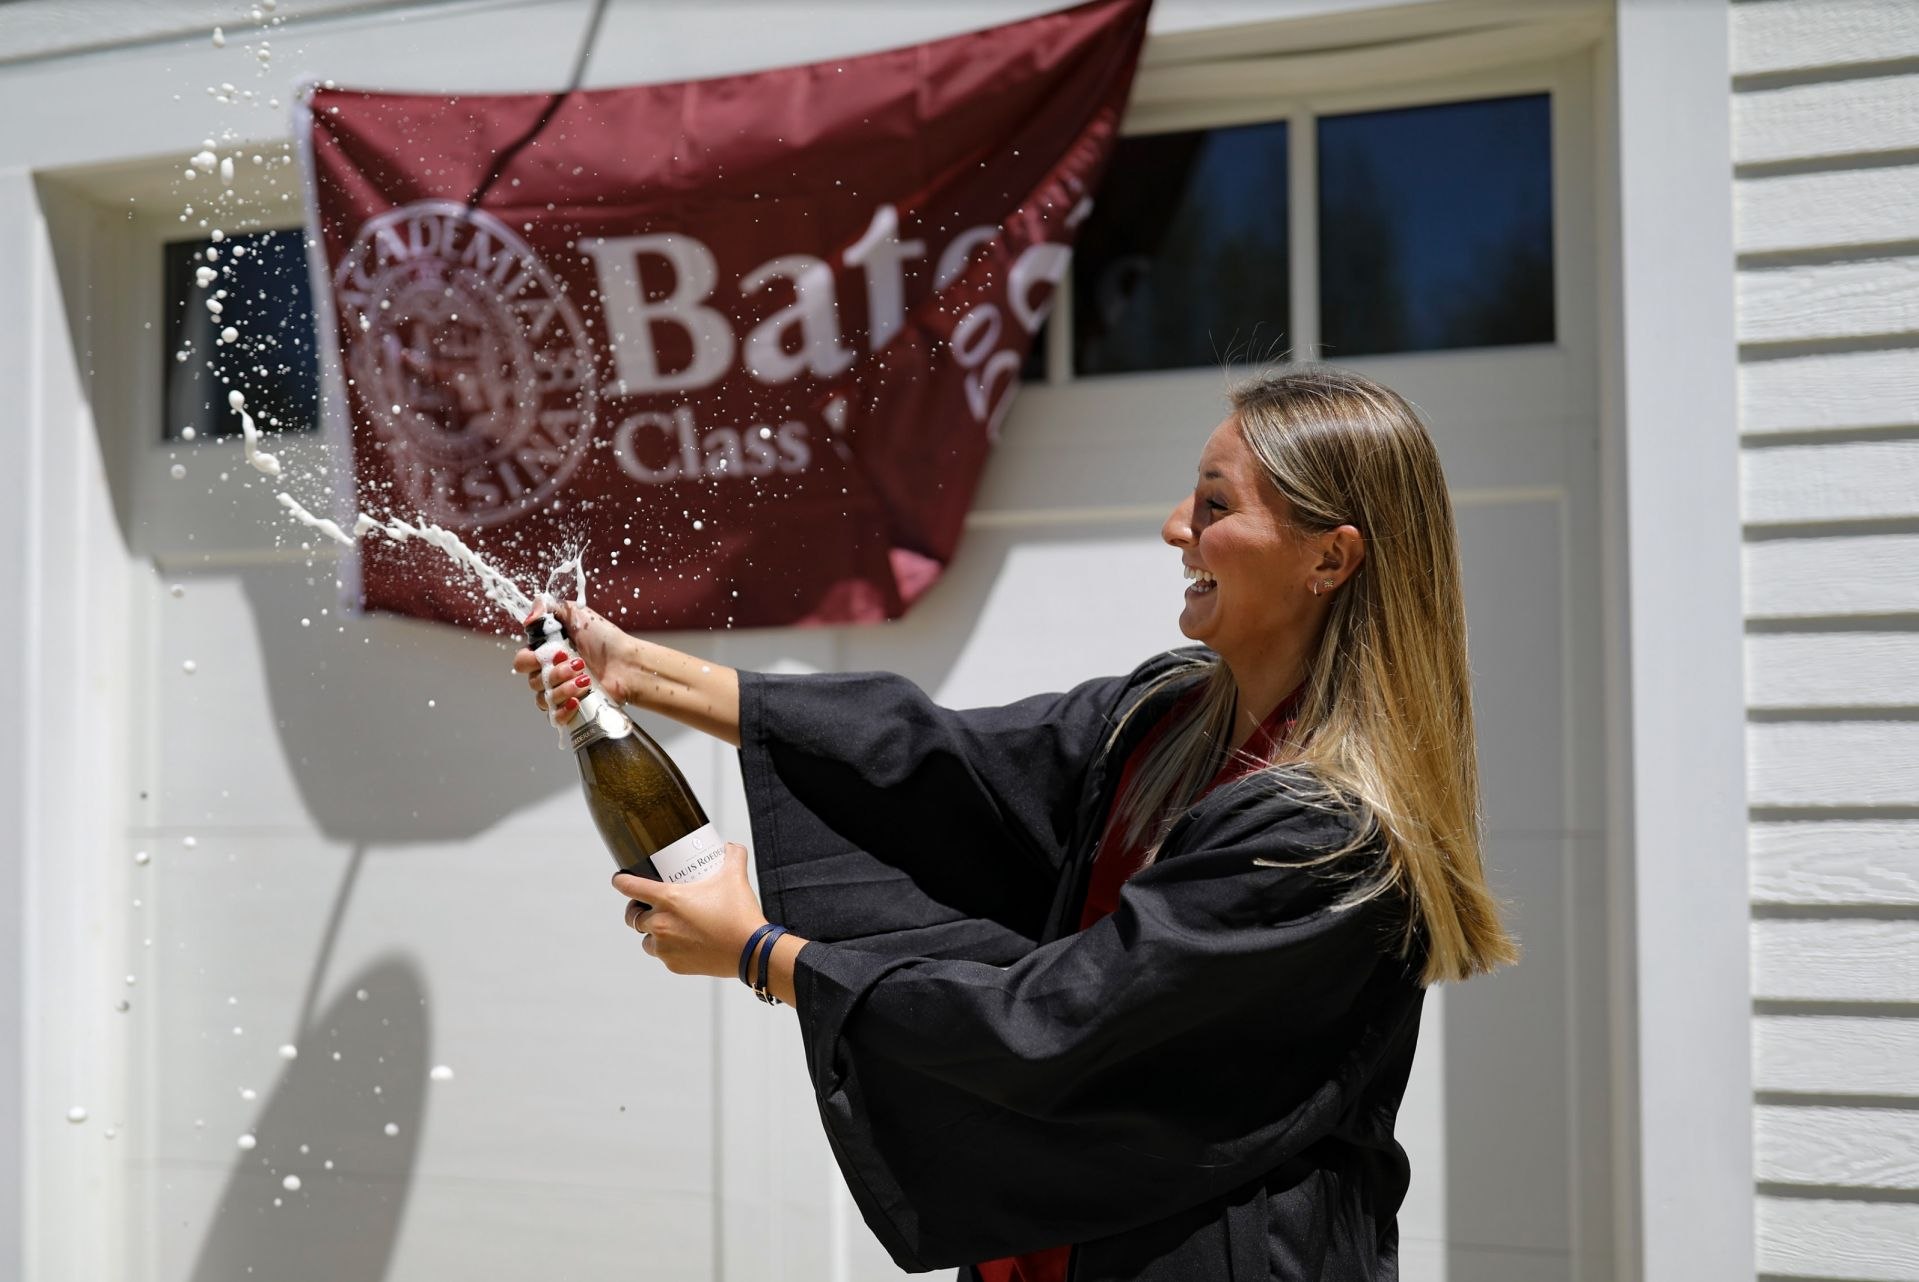 Scenes from Commencement Day, May 31, 2020. Anna Glass '20 of Wilton, Maine, celebrates at home with her parents, Marc and Wendy Glass .@berglicht